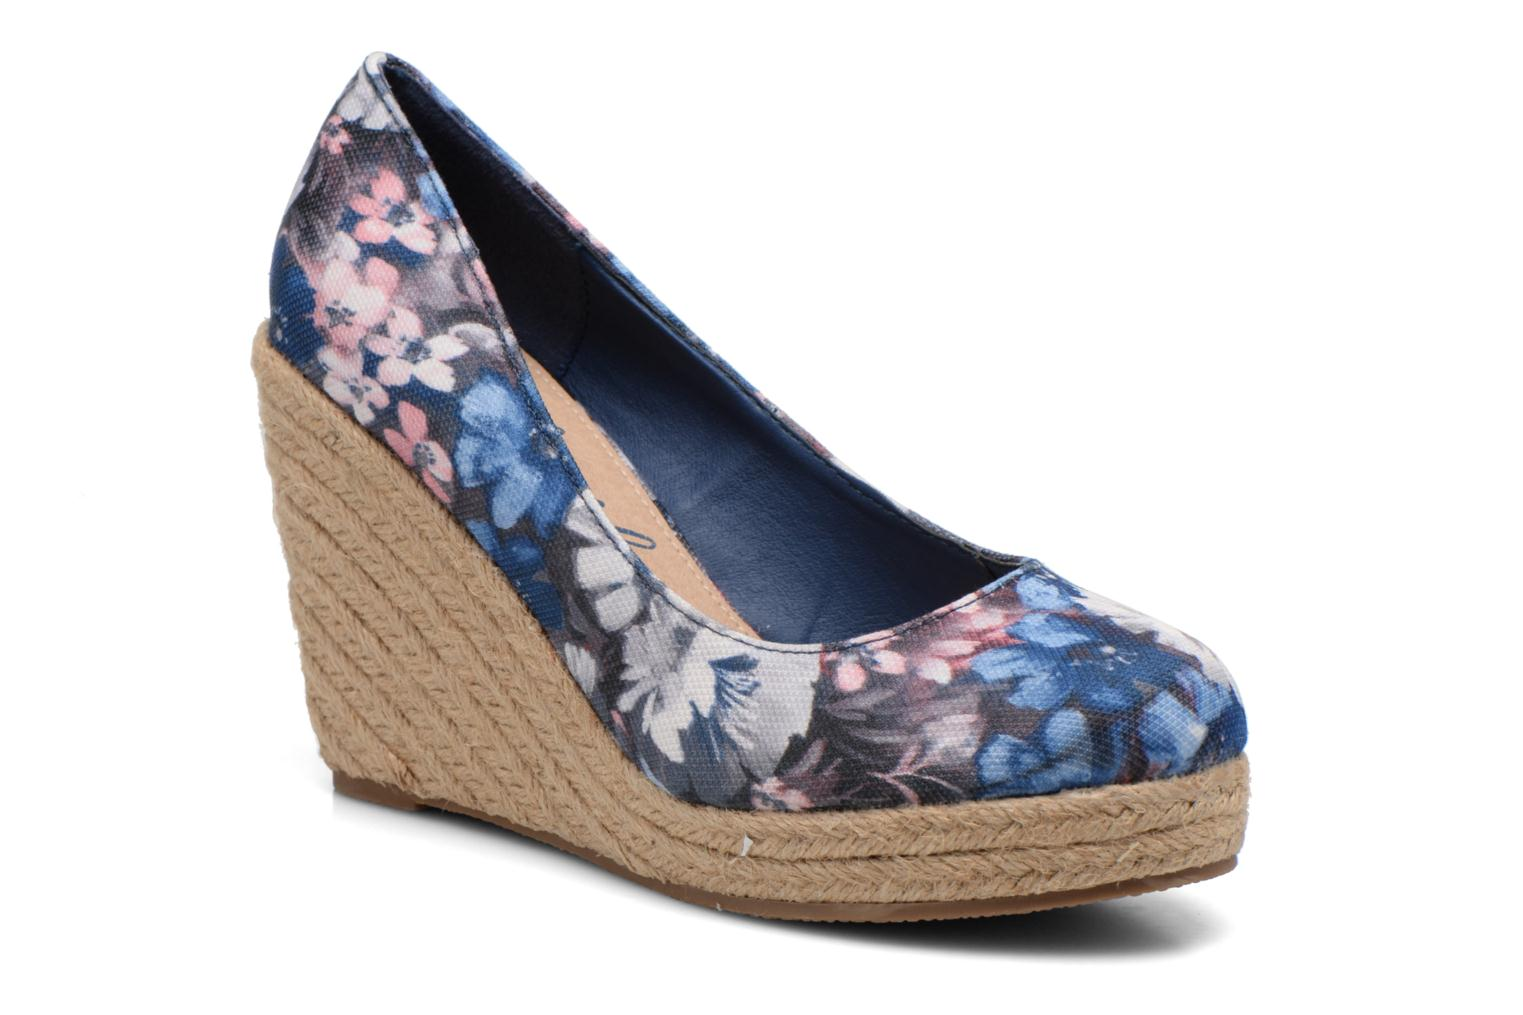 Marques Chaussure femme Refresh femme Sunset 61720 Jeans